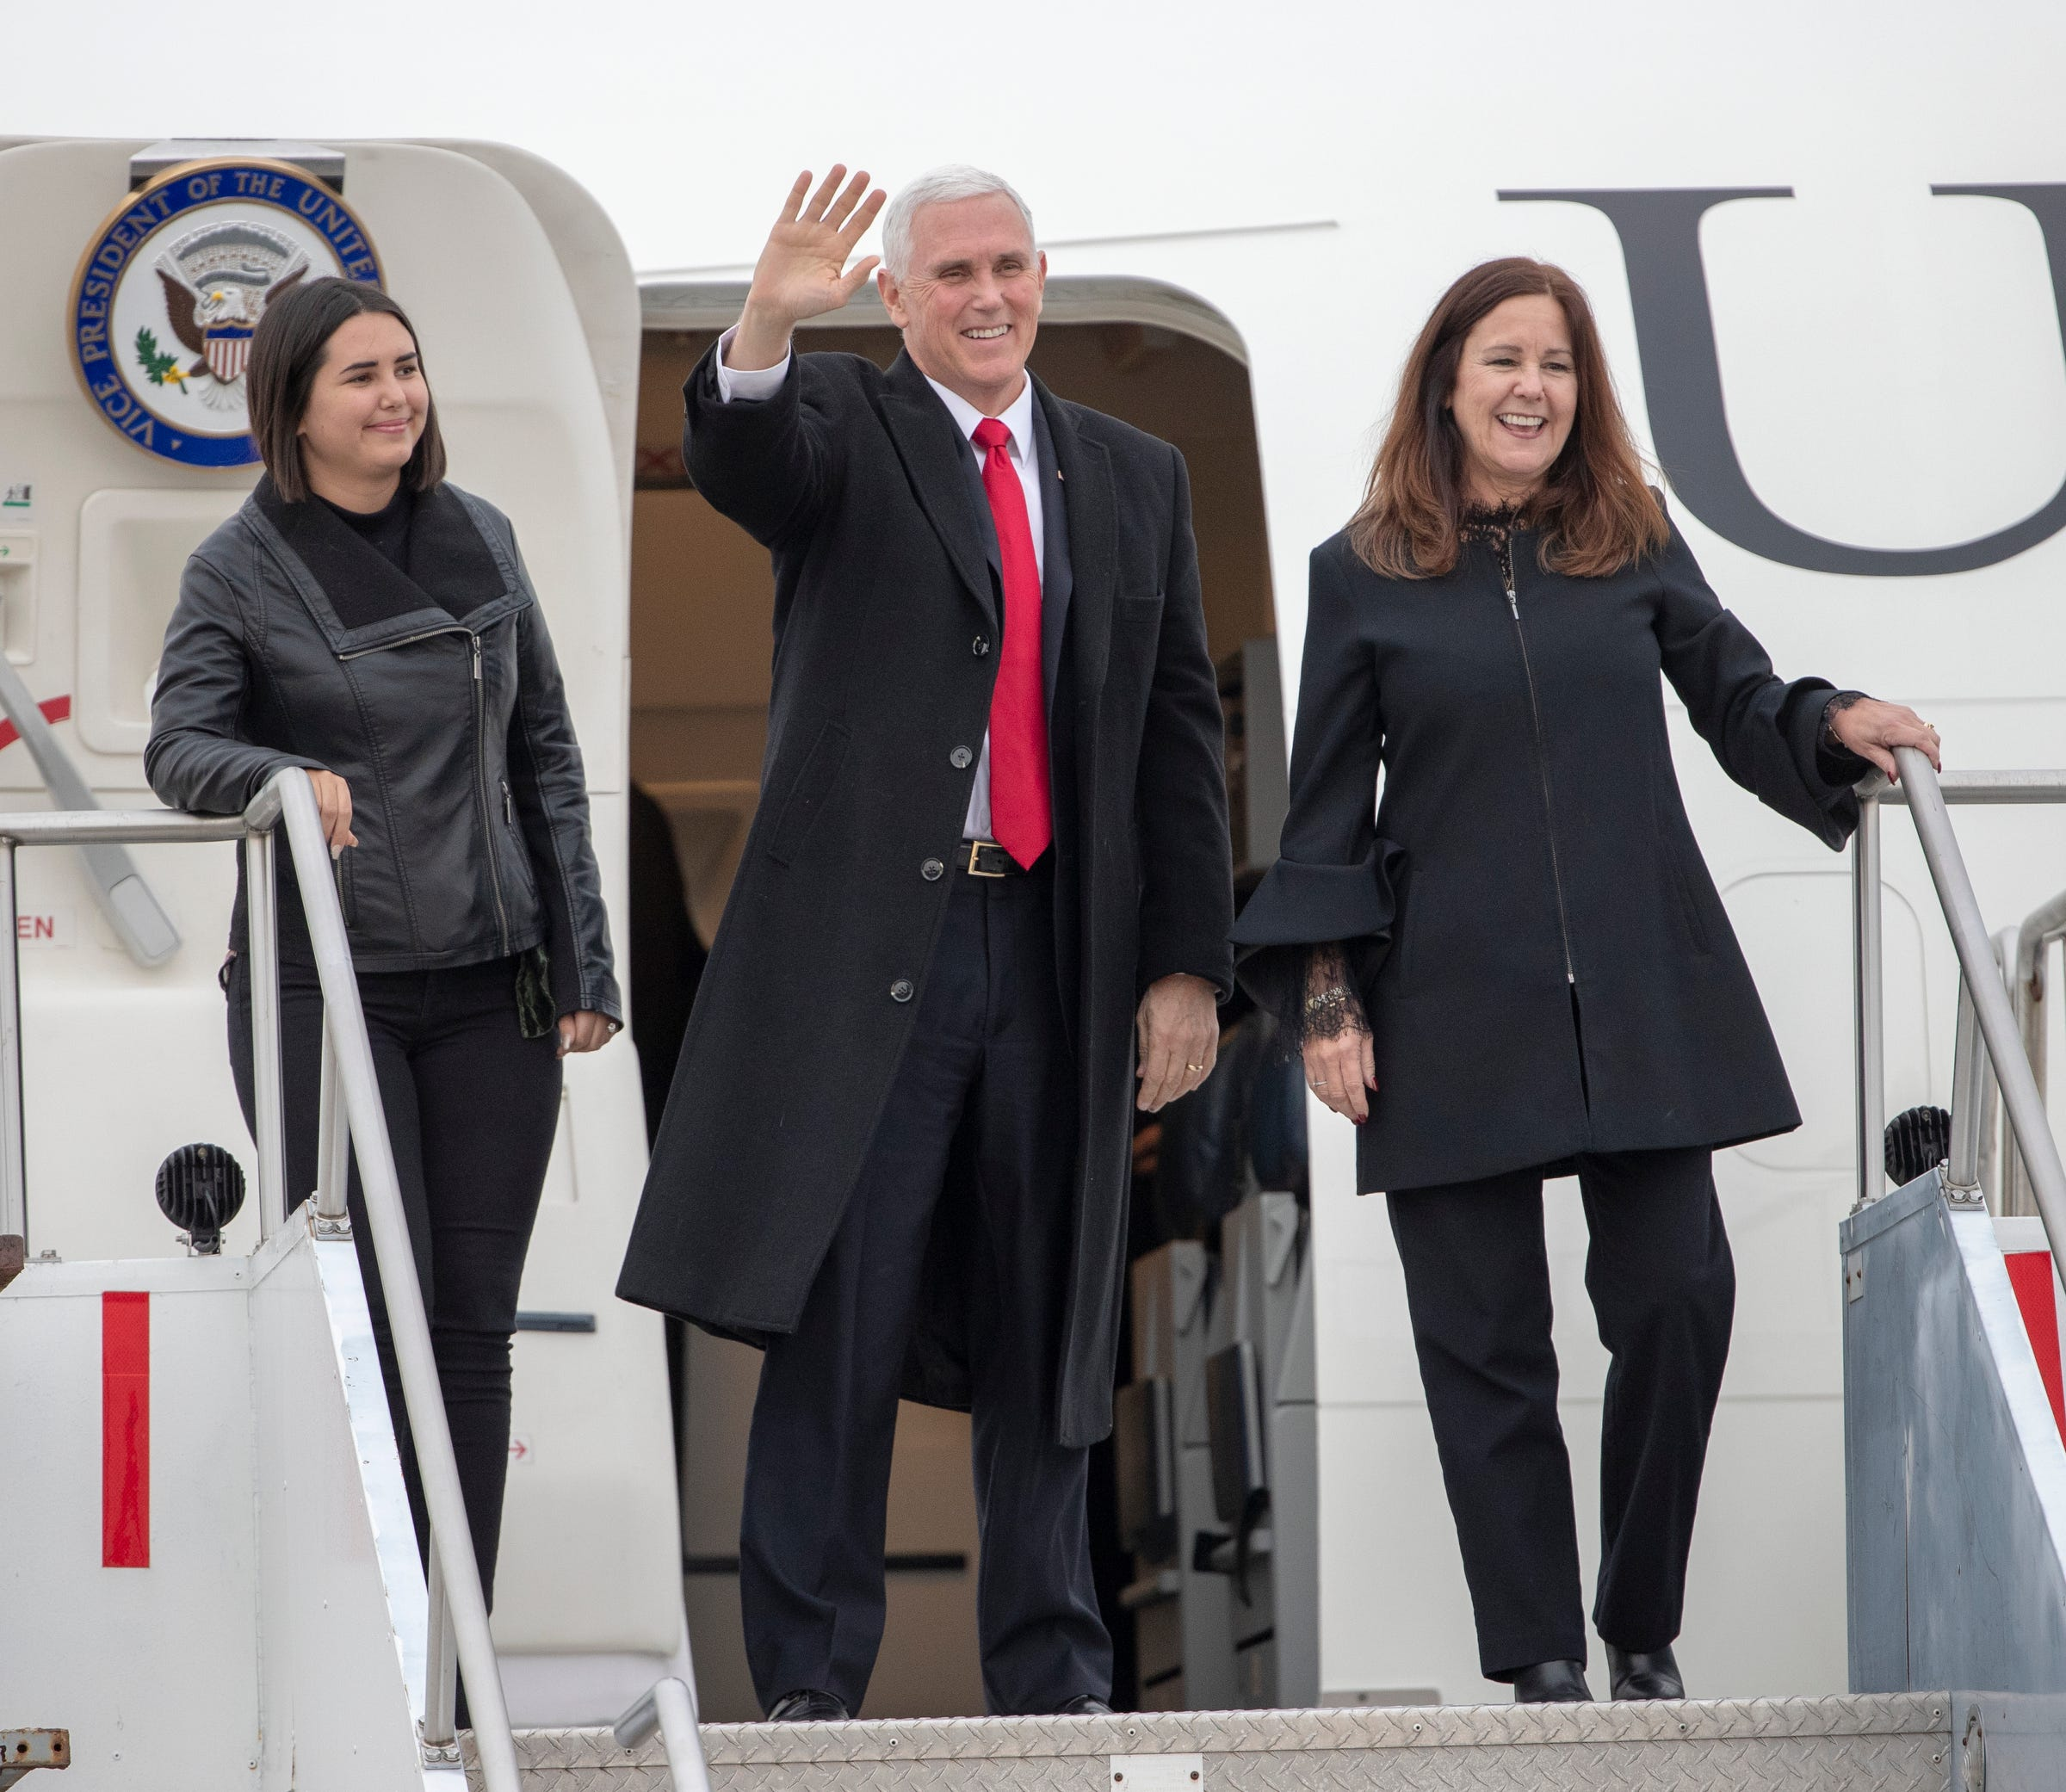 Vice President Mike Pence arrives in Indianapolis for roundtable on Holcomb re-election